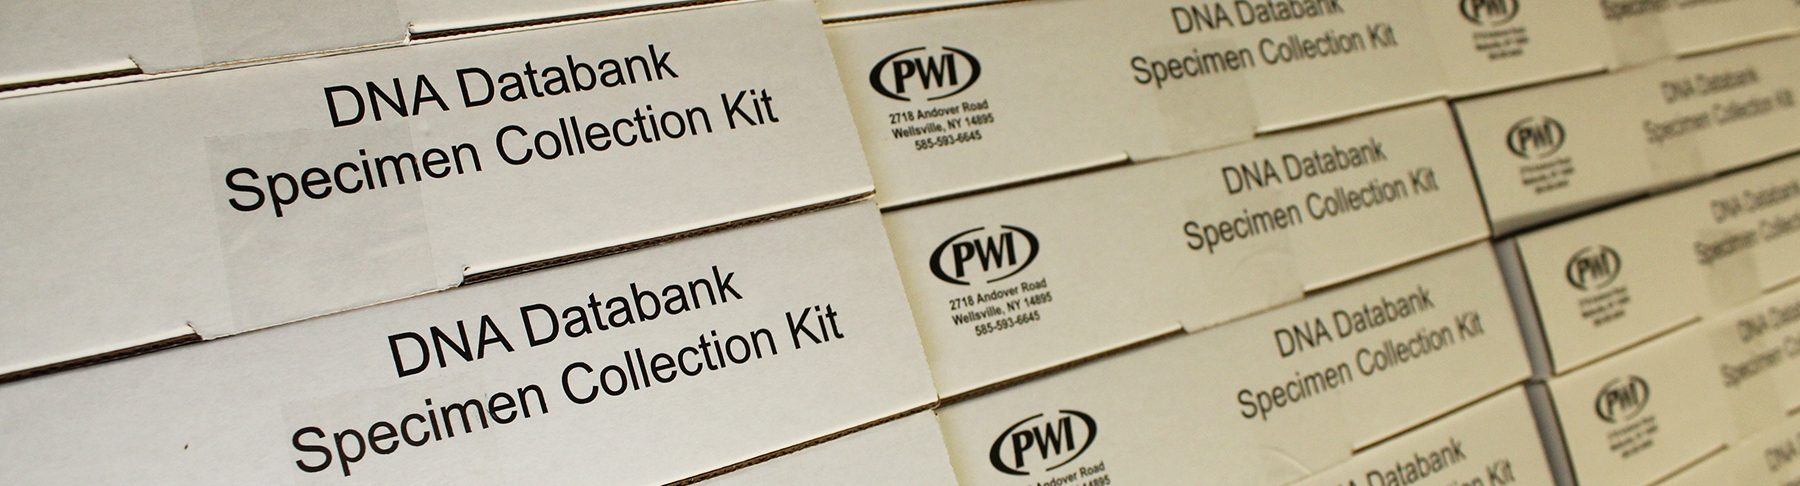 PWI DNA Databank Collection Kit Close-up